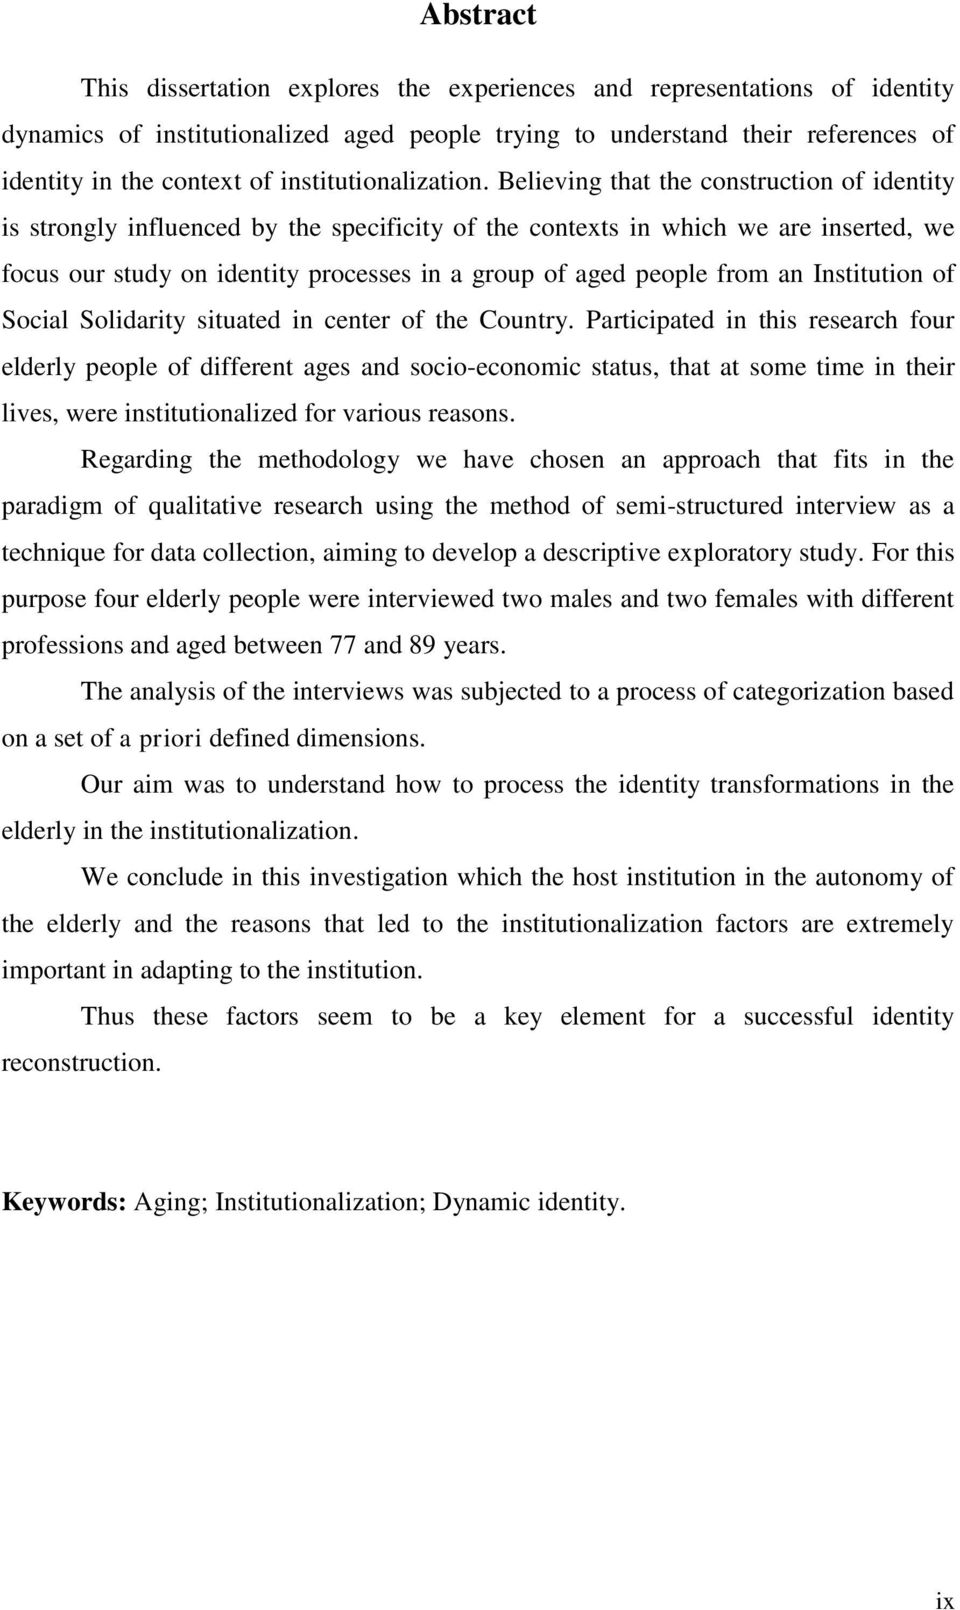 Believing that the construction of identity is strongly influenced by the specificity of the contexts in which we are inserted, we focus our study on identity processes in a group of aged people from